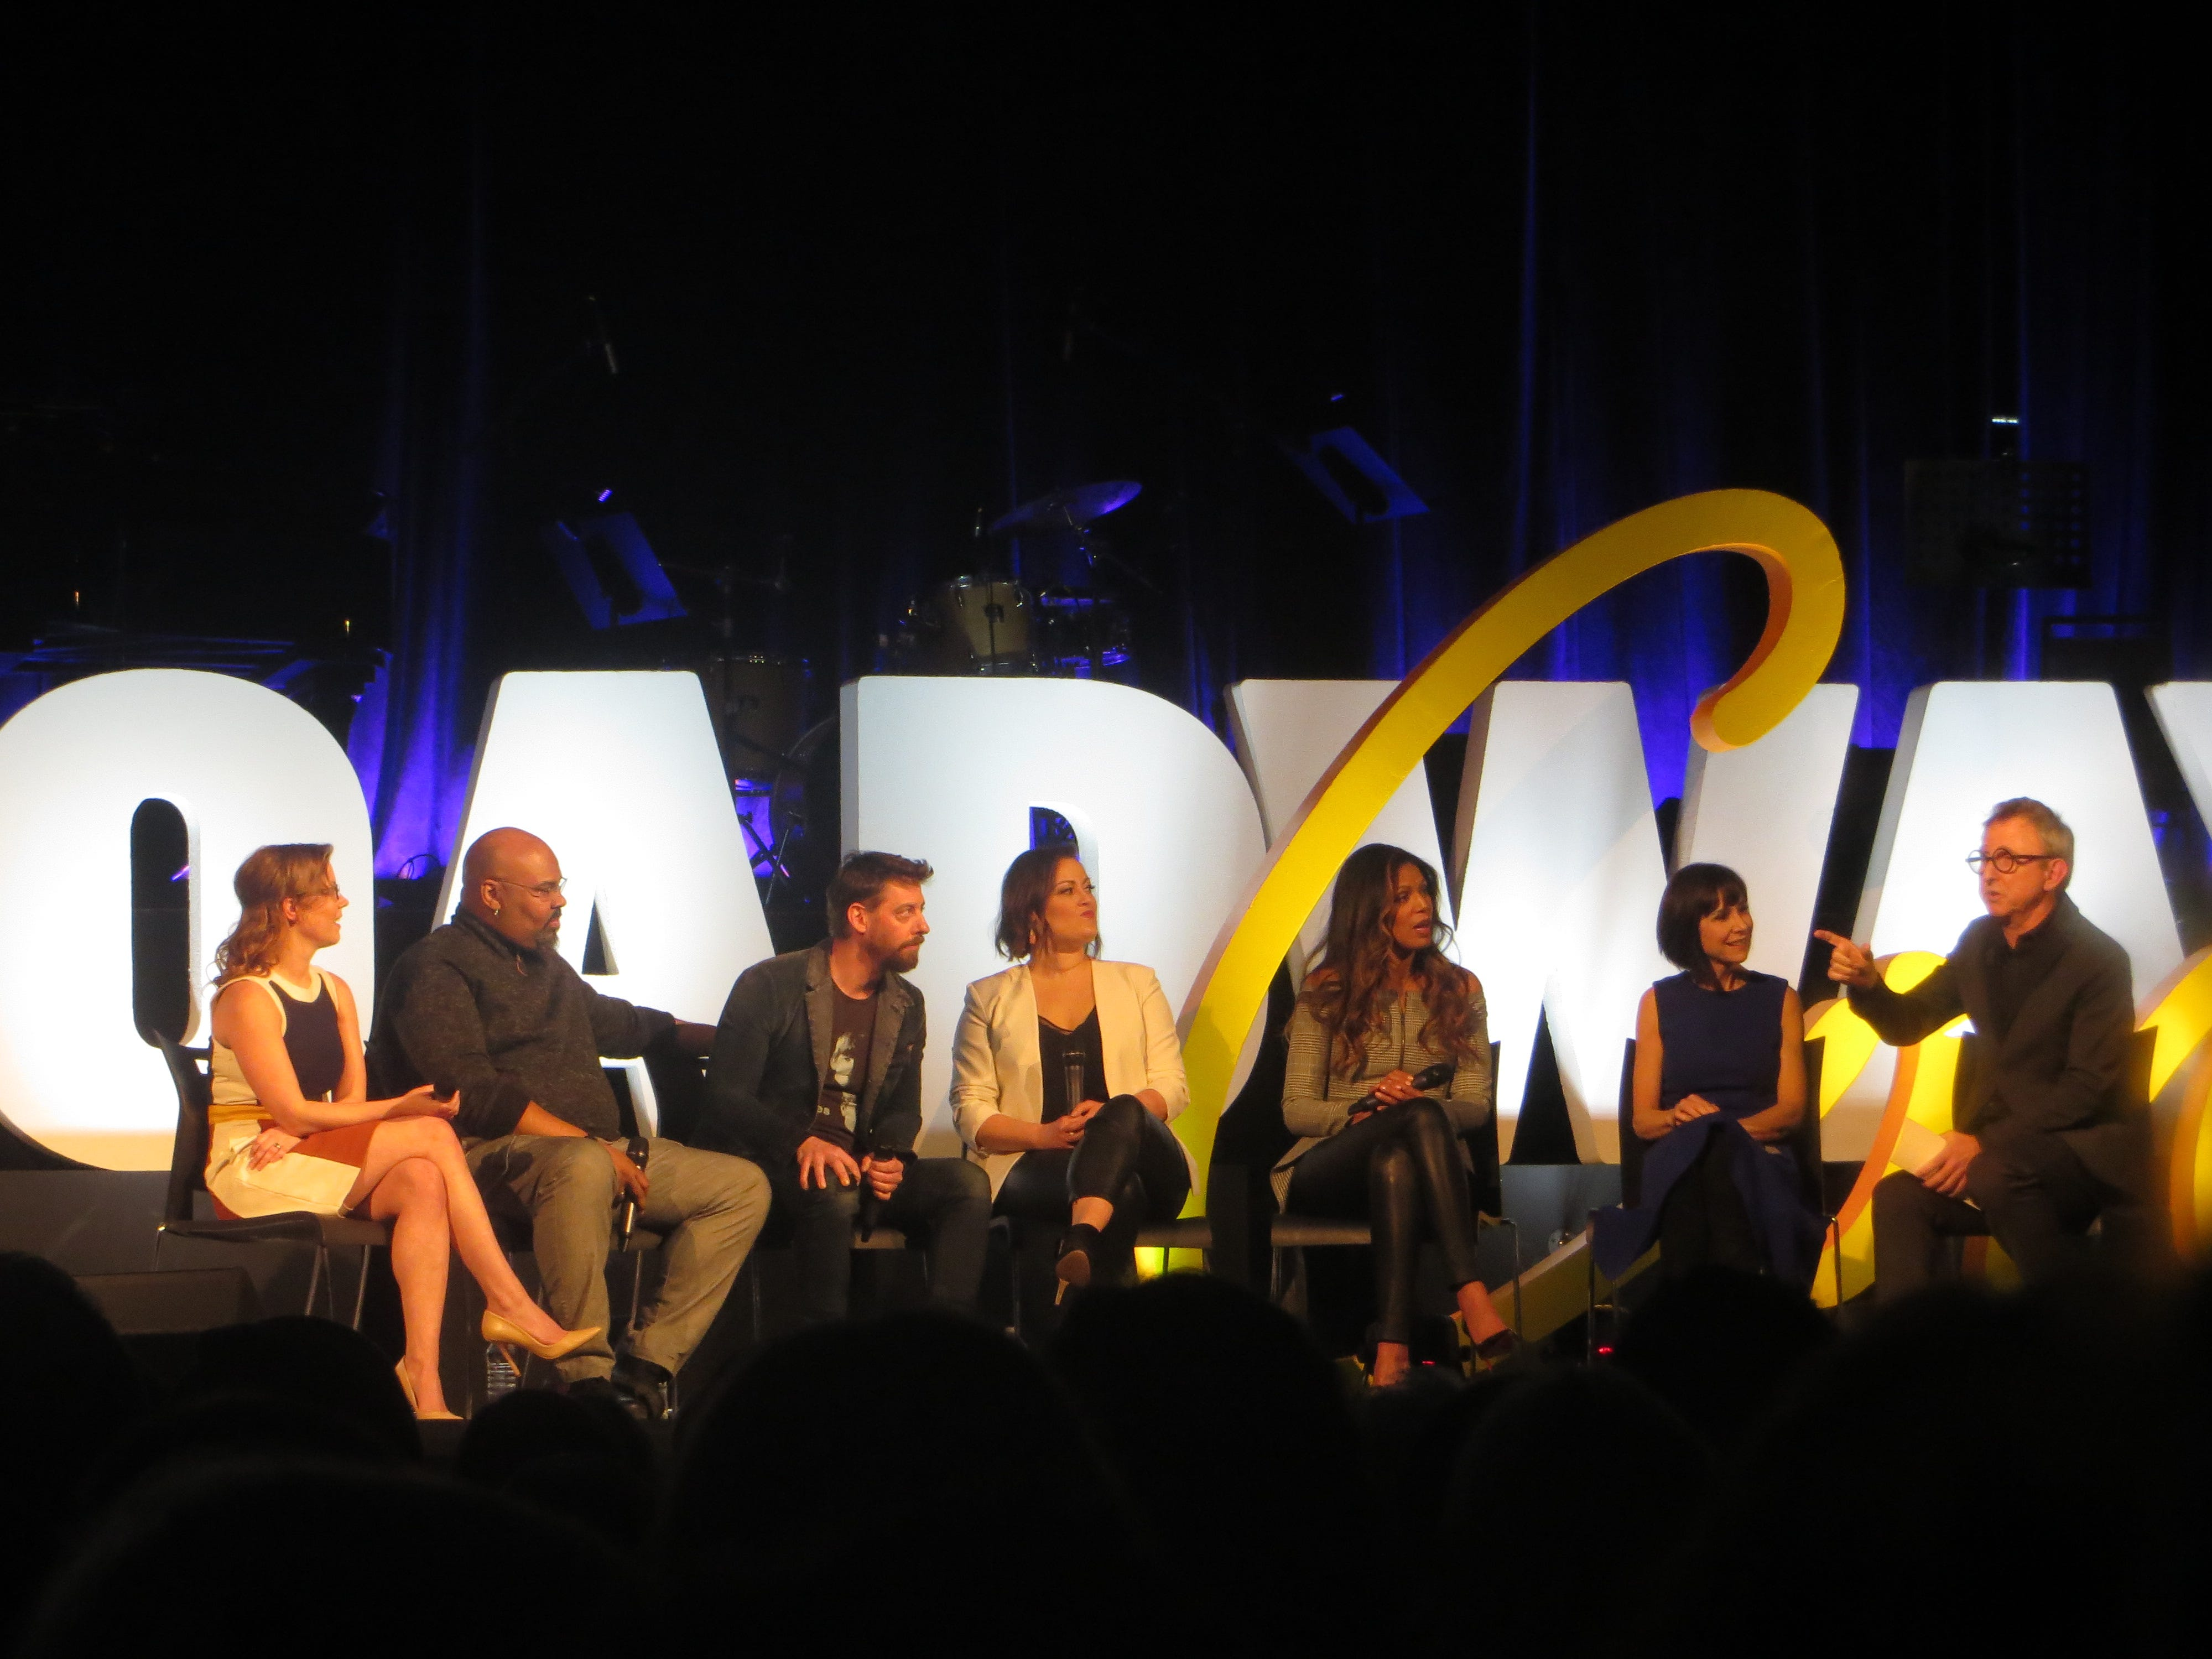 Patti Murin, James Monroe Iglehart, Christian Borle, Ashley Brown, Merle Dandridge and Susan Egan take part in a discussion with Thomas Schumacher during a Disney on Broadway at 25 panel at BroadwayCon 2019, held Jan. 11 to 13, 2019, at the New York Hilton Midtown in Manhattan.